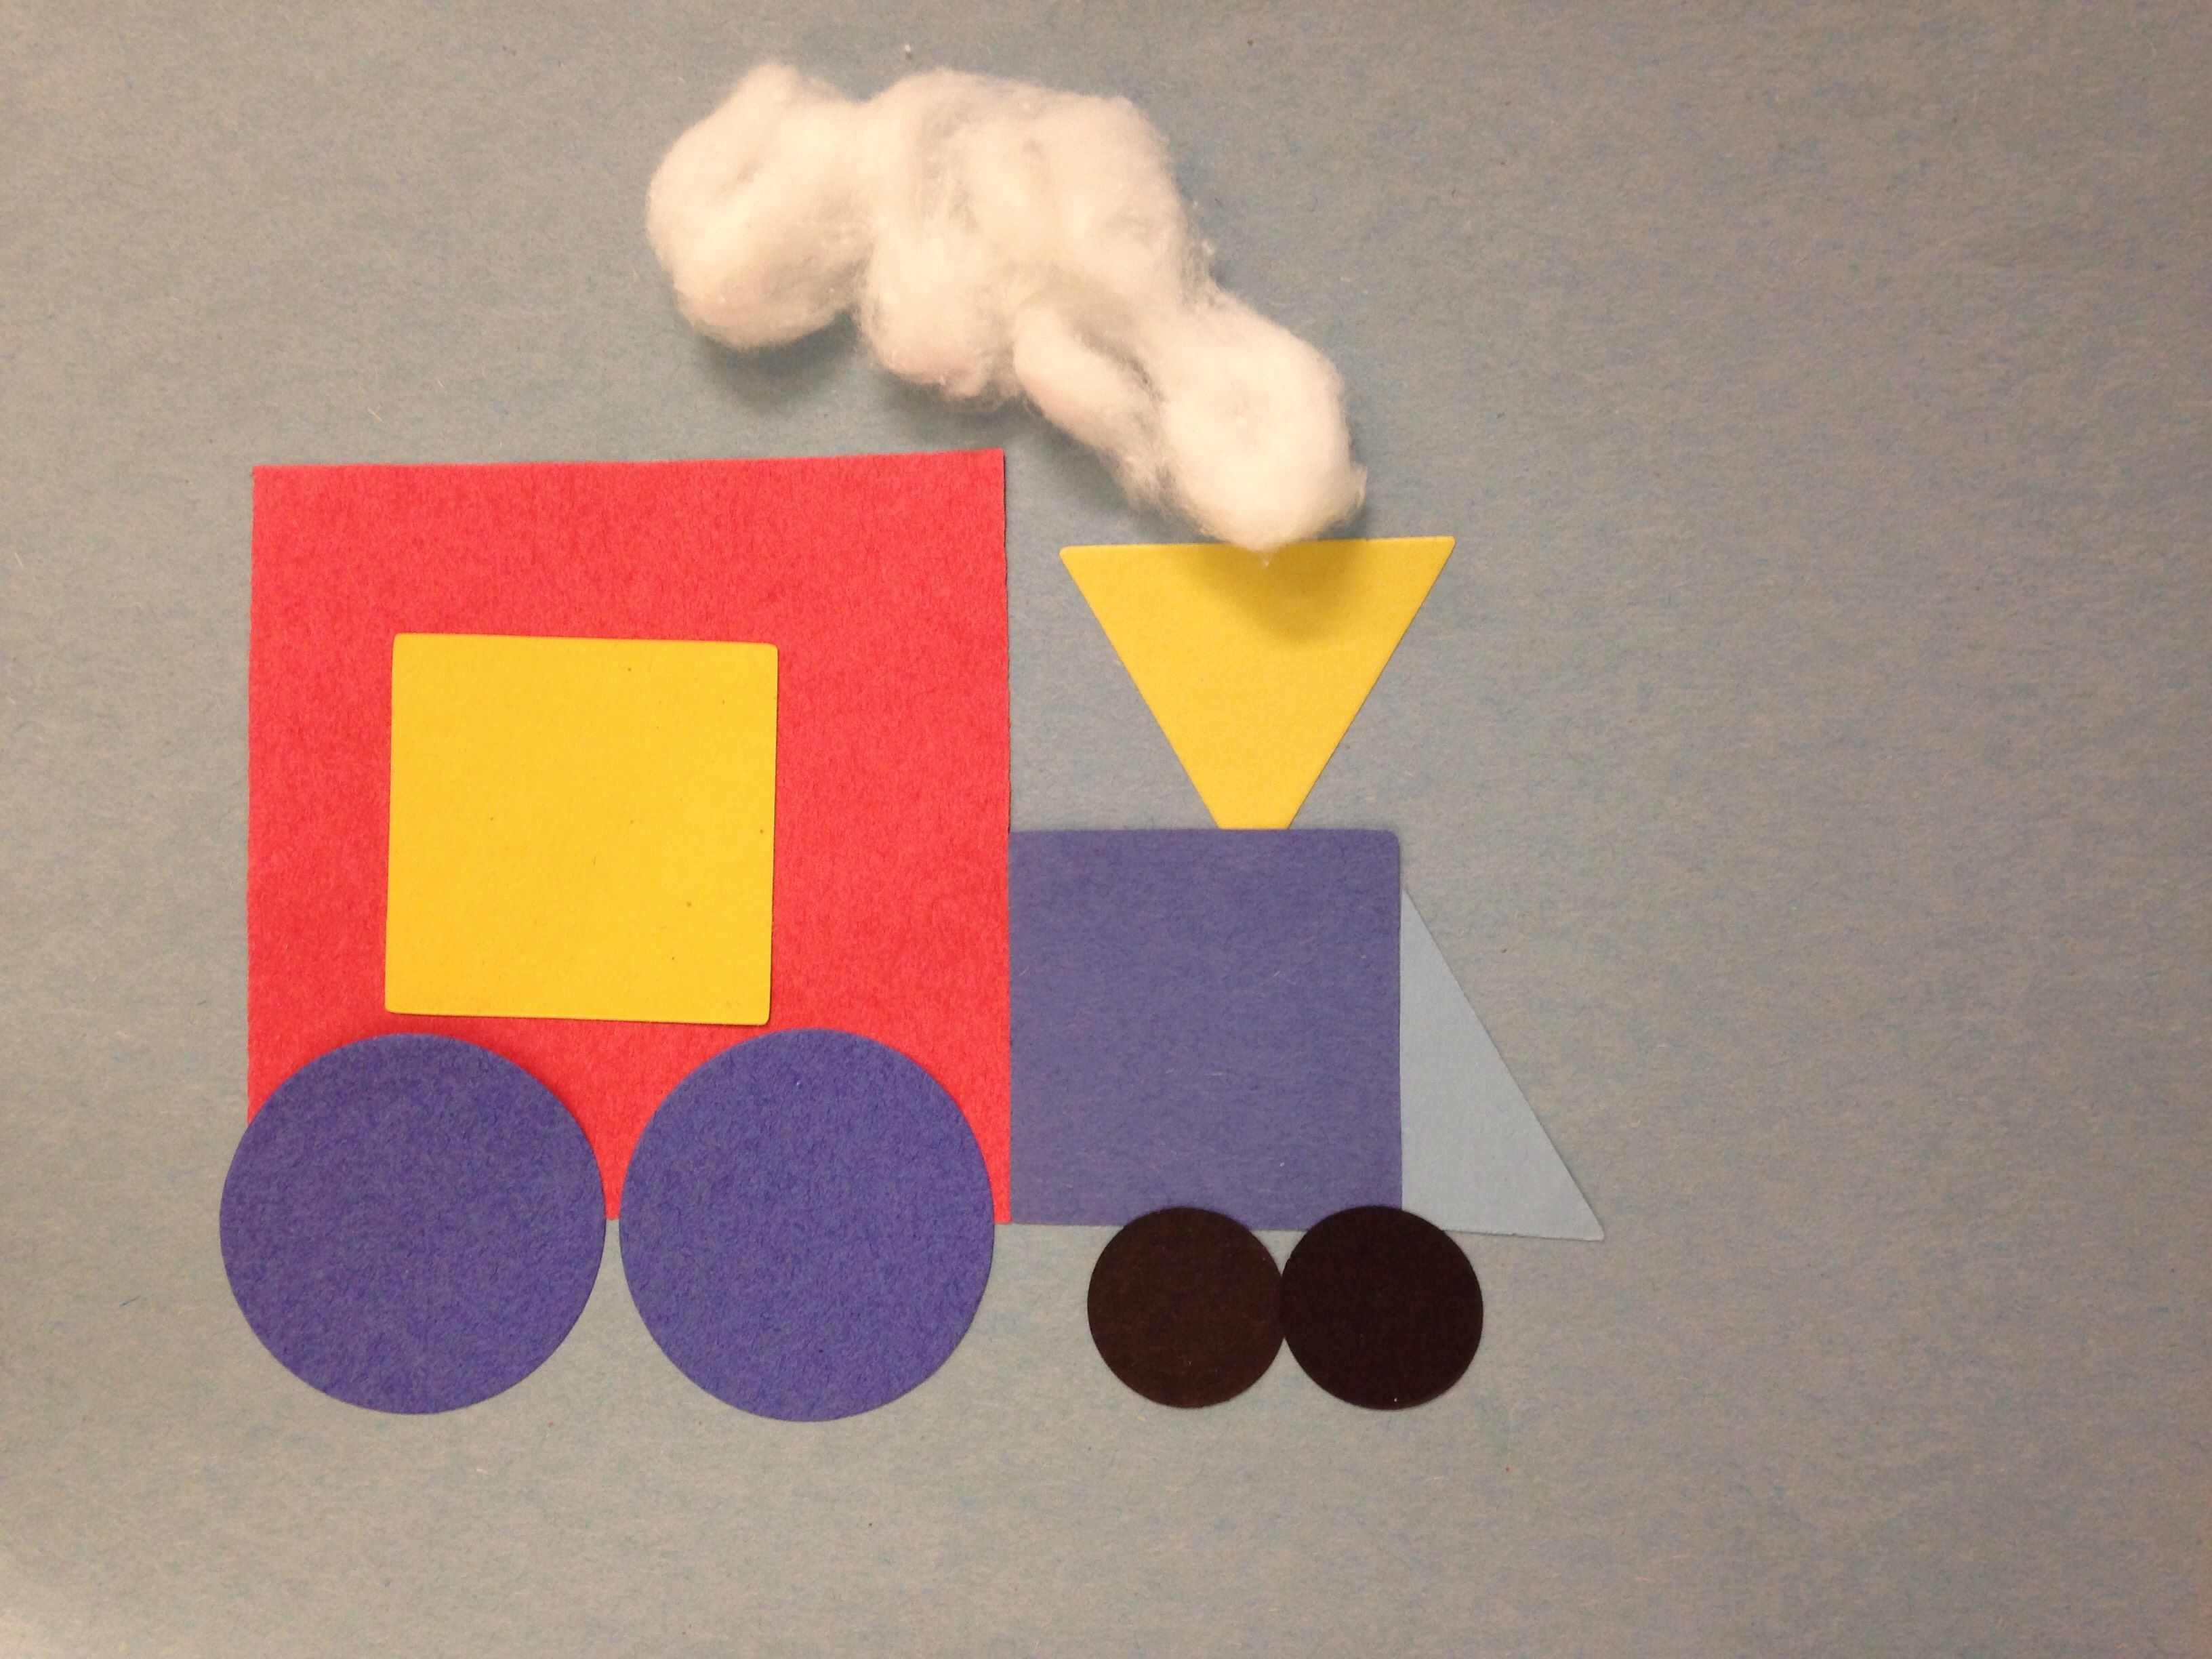 Train Storytime craft (With images) | Storytime crafts, Train ...